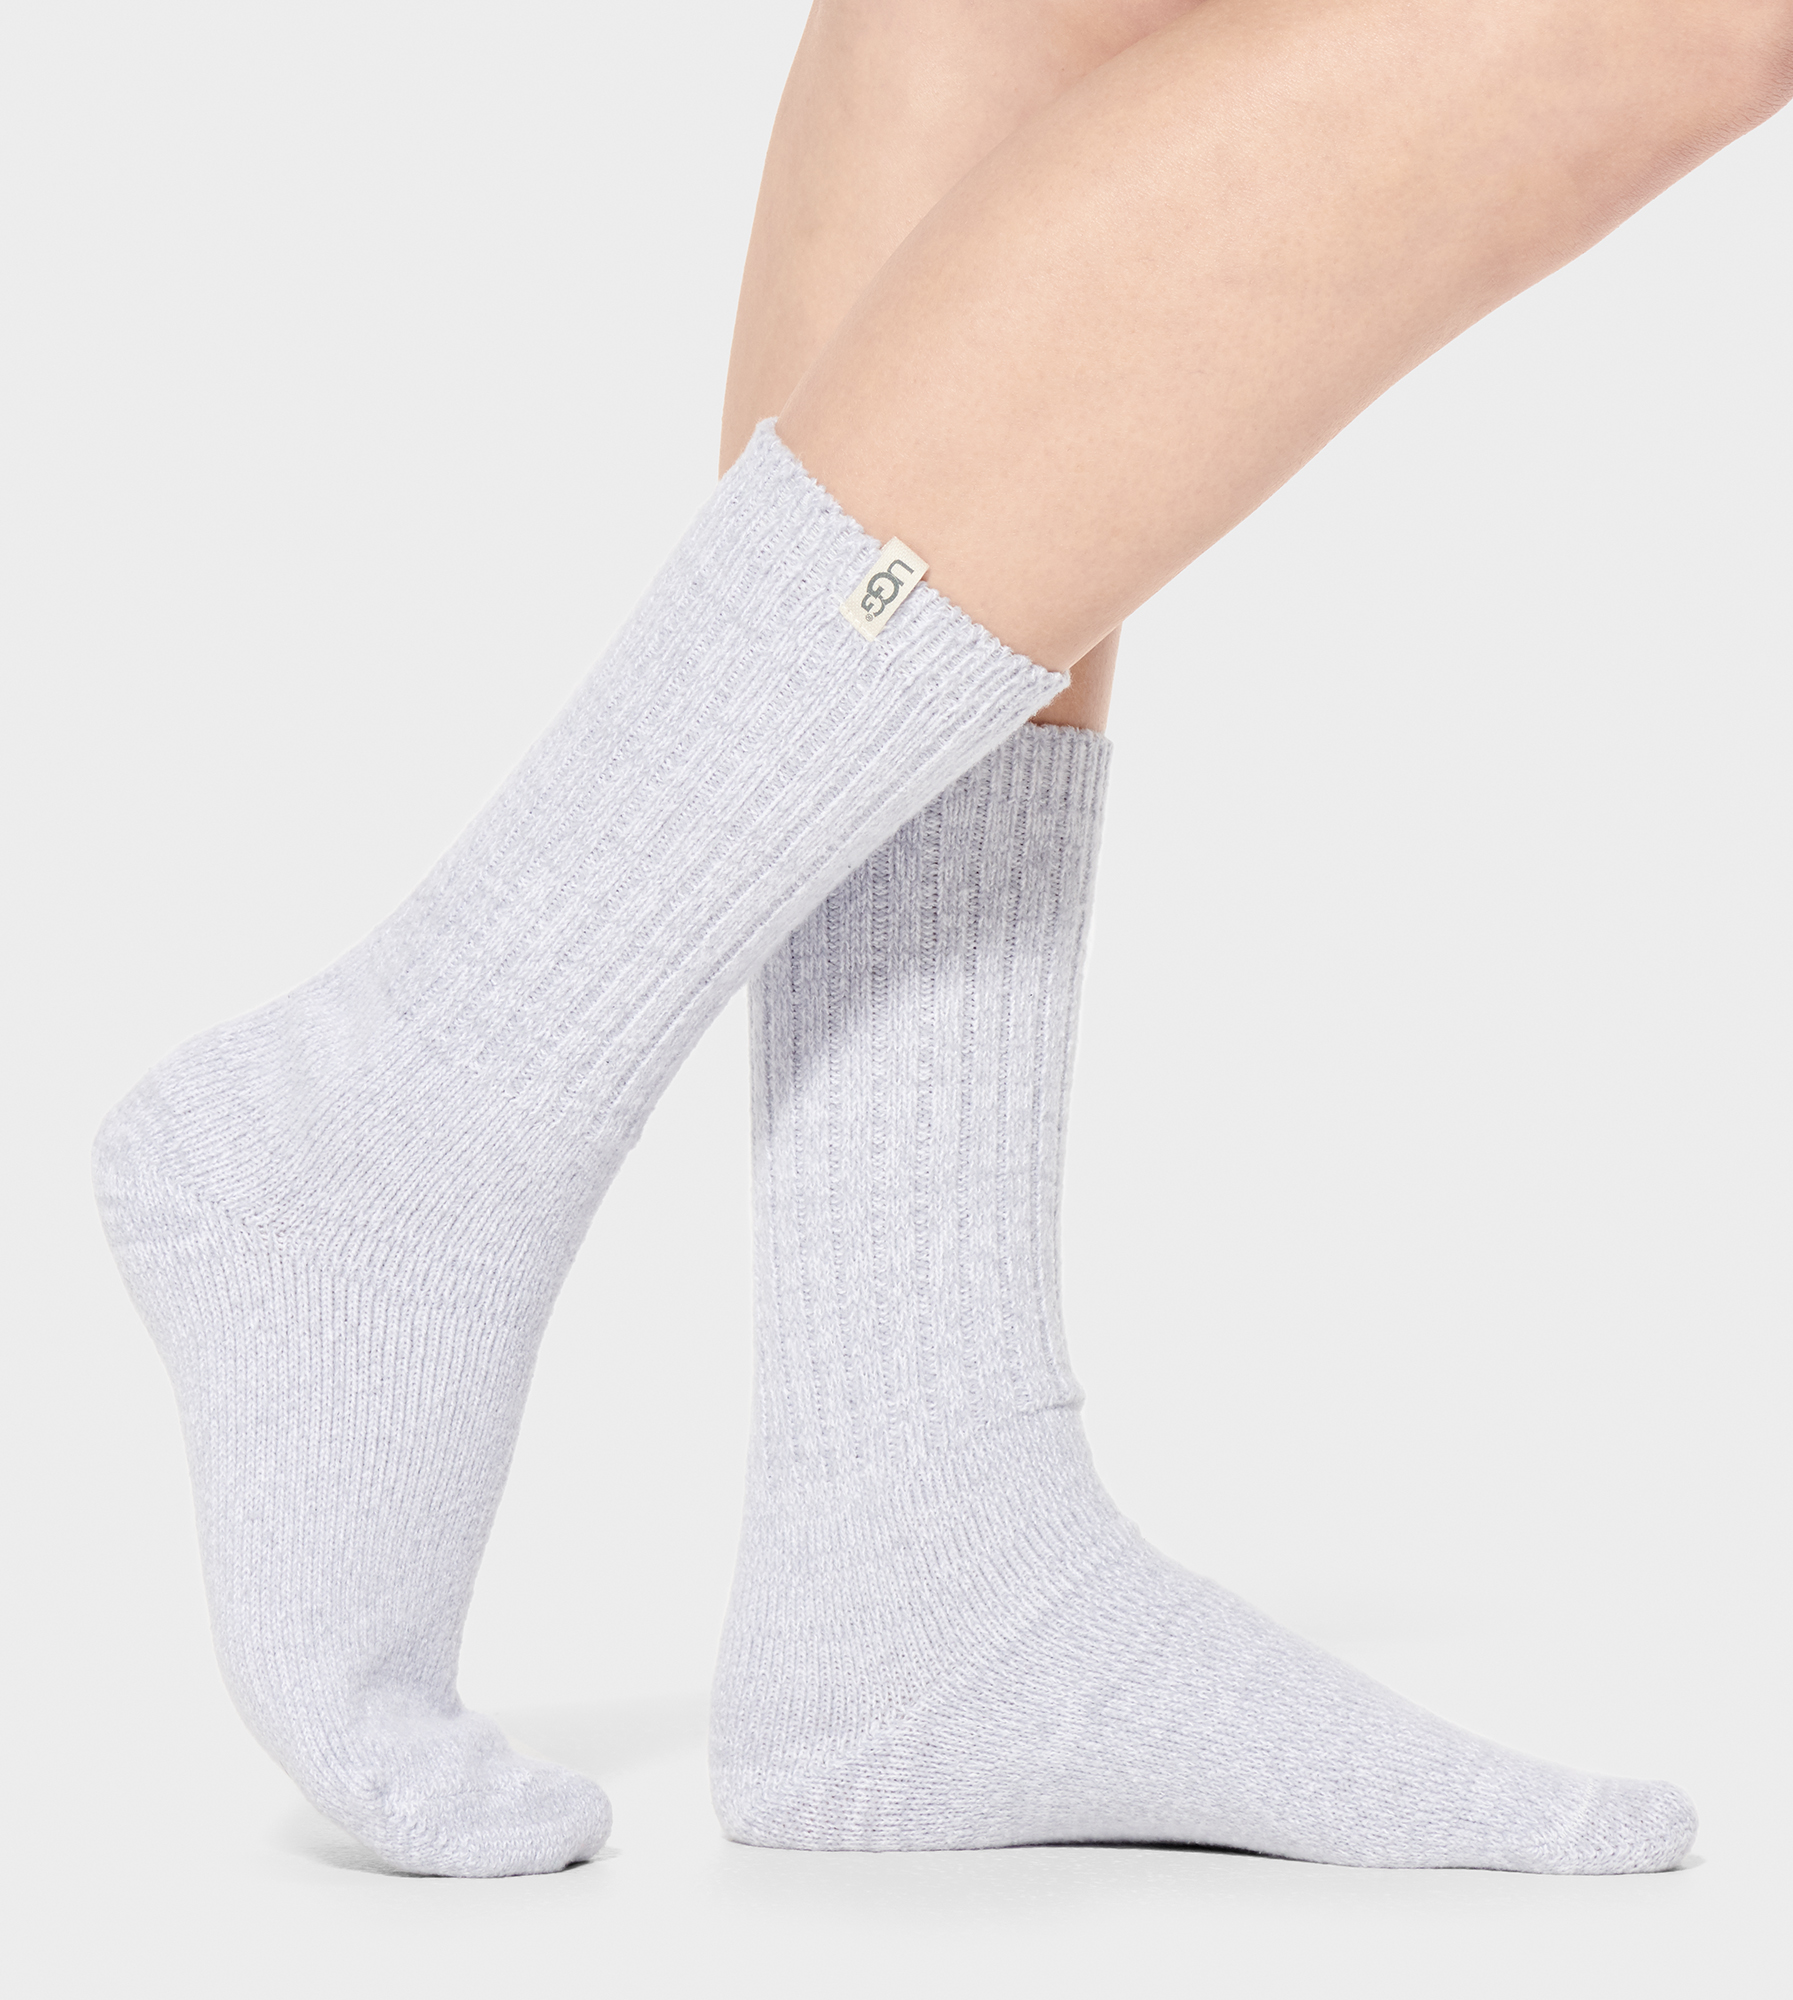 UGG Women's Rib Knit Slouchy Crew Sock Polyester Socks in Icelandic Blue Just slouchy enough, these ultra-soft knit socks are a favorite. Wear around the house, or peeking out from an ankle boot. 99% Polyester, 1% Spandex. UGG Women's Rib Knit Slouchy Crew Sock Polyester Socks in Icelandic Blue